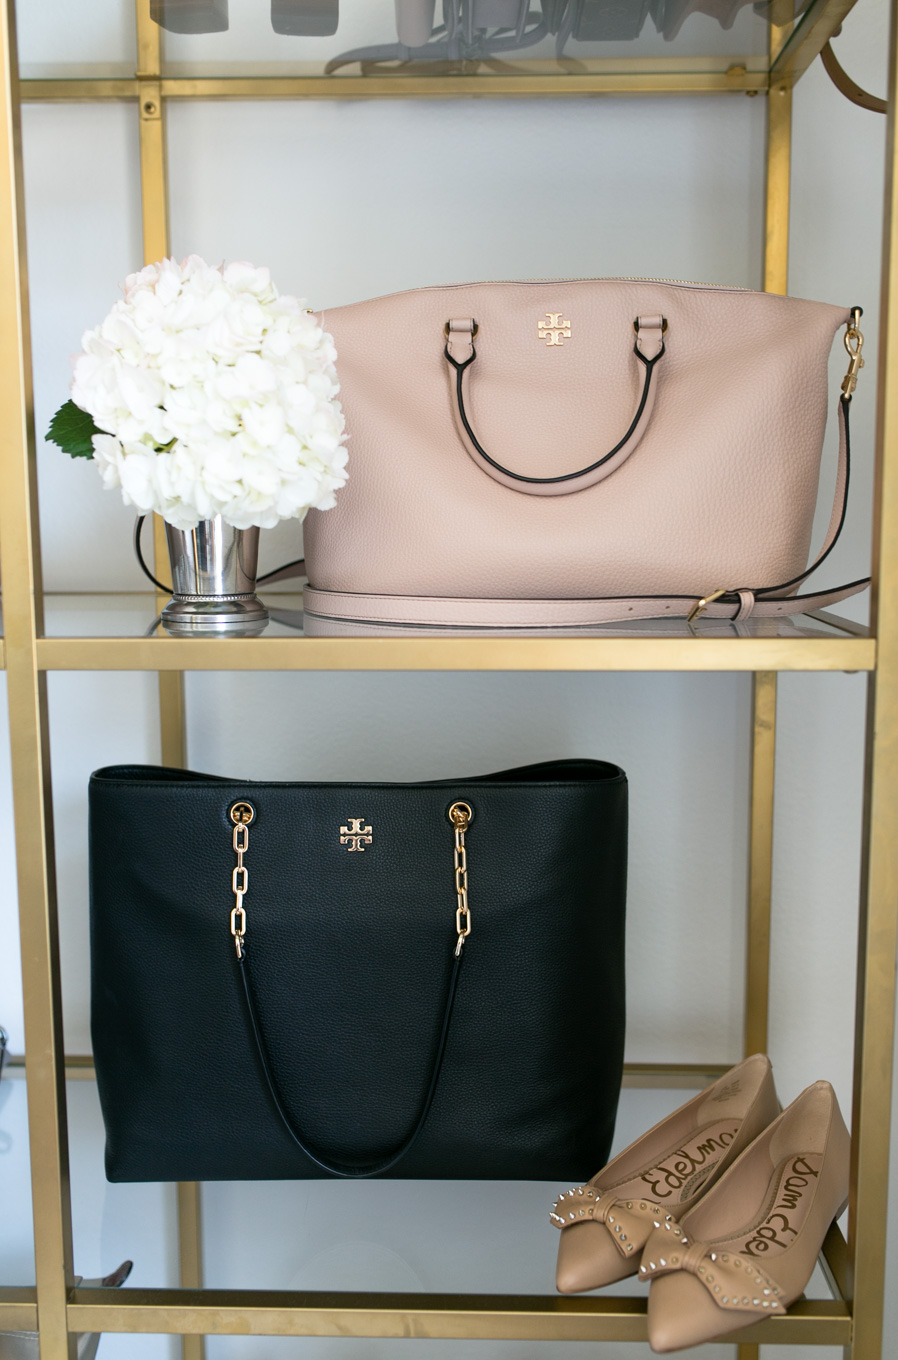 Daryl-Ann Denner shares her favorite handbags of the Nordstrom Anniversary Sale 2017 including the Tory Burch Frida Leather Satchel in Light Oak and the Tory Burch Frida Pebbled Leather Tote in Black.